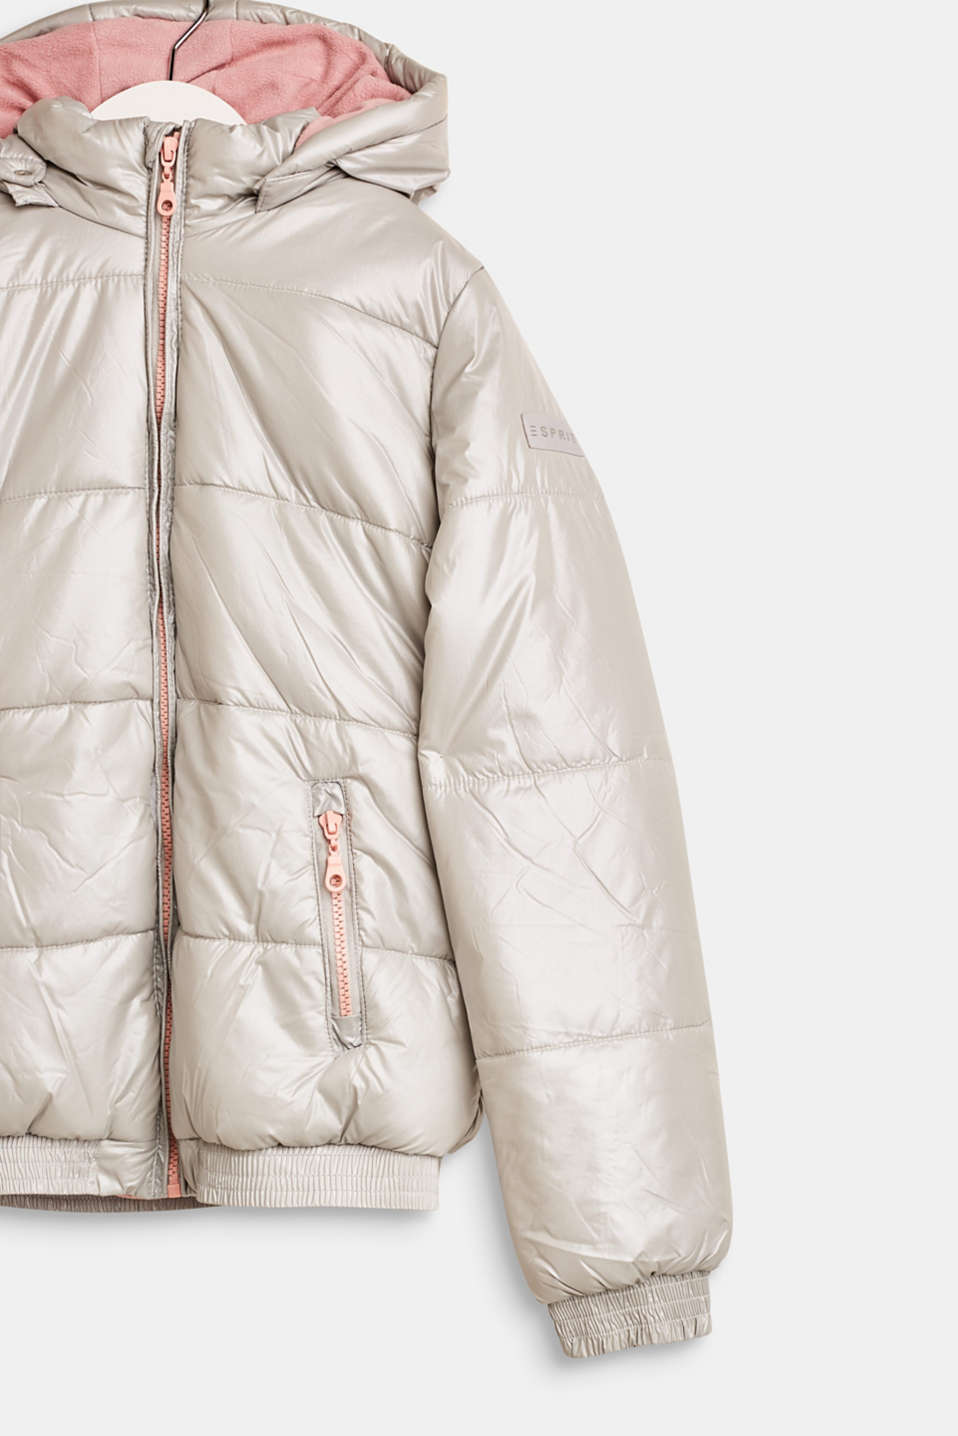 Jackets outdoor woven, LCSILVER, detail image number 3